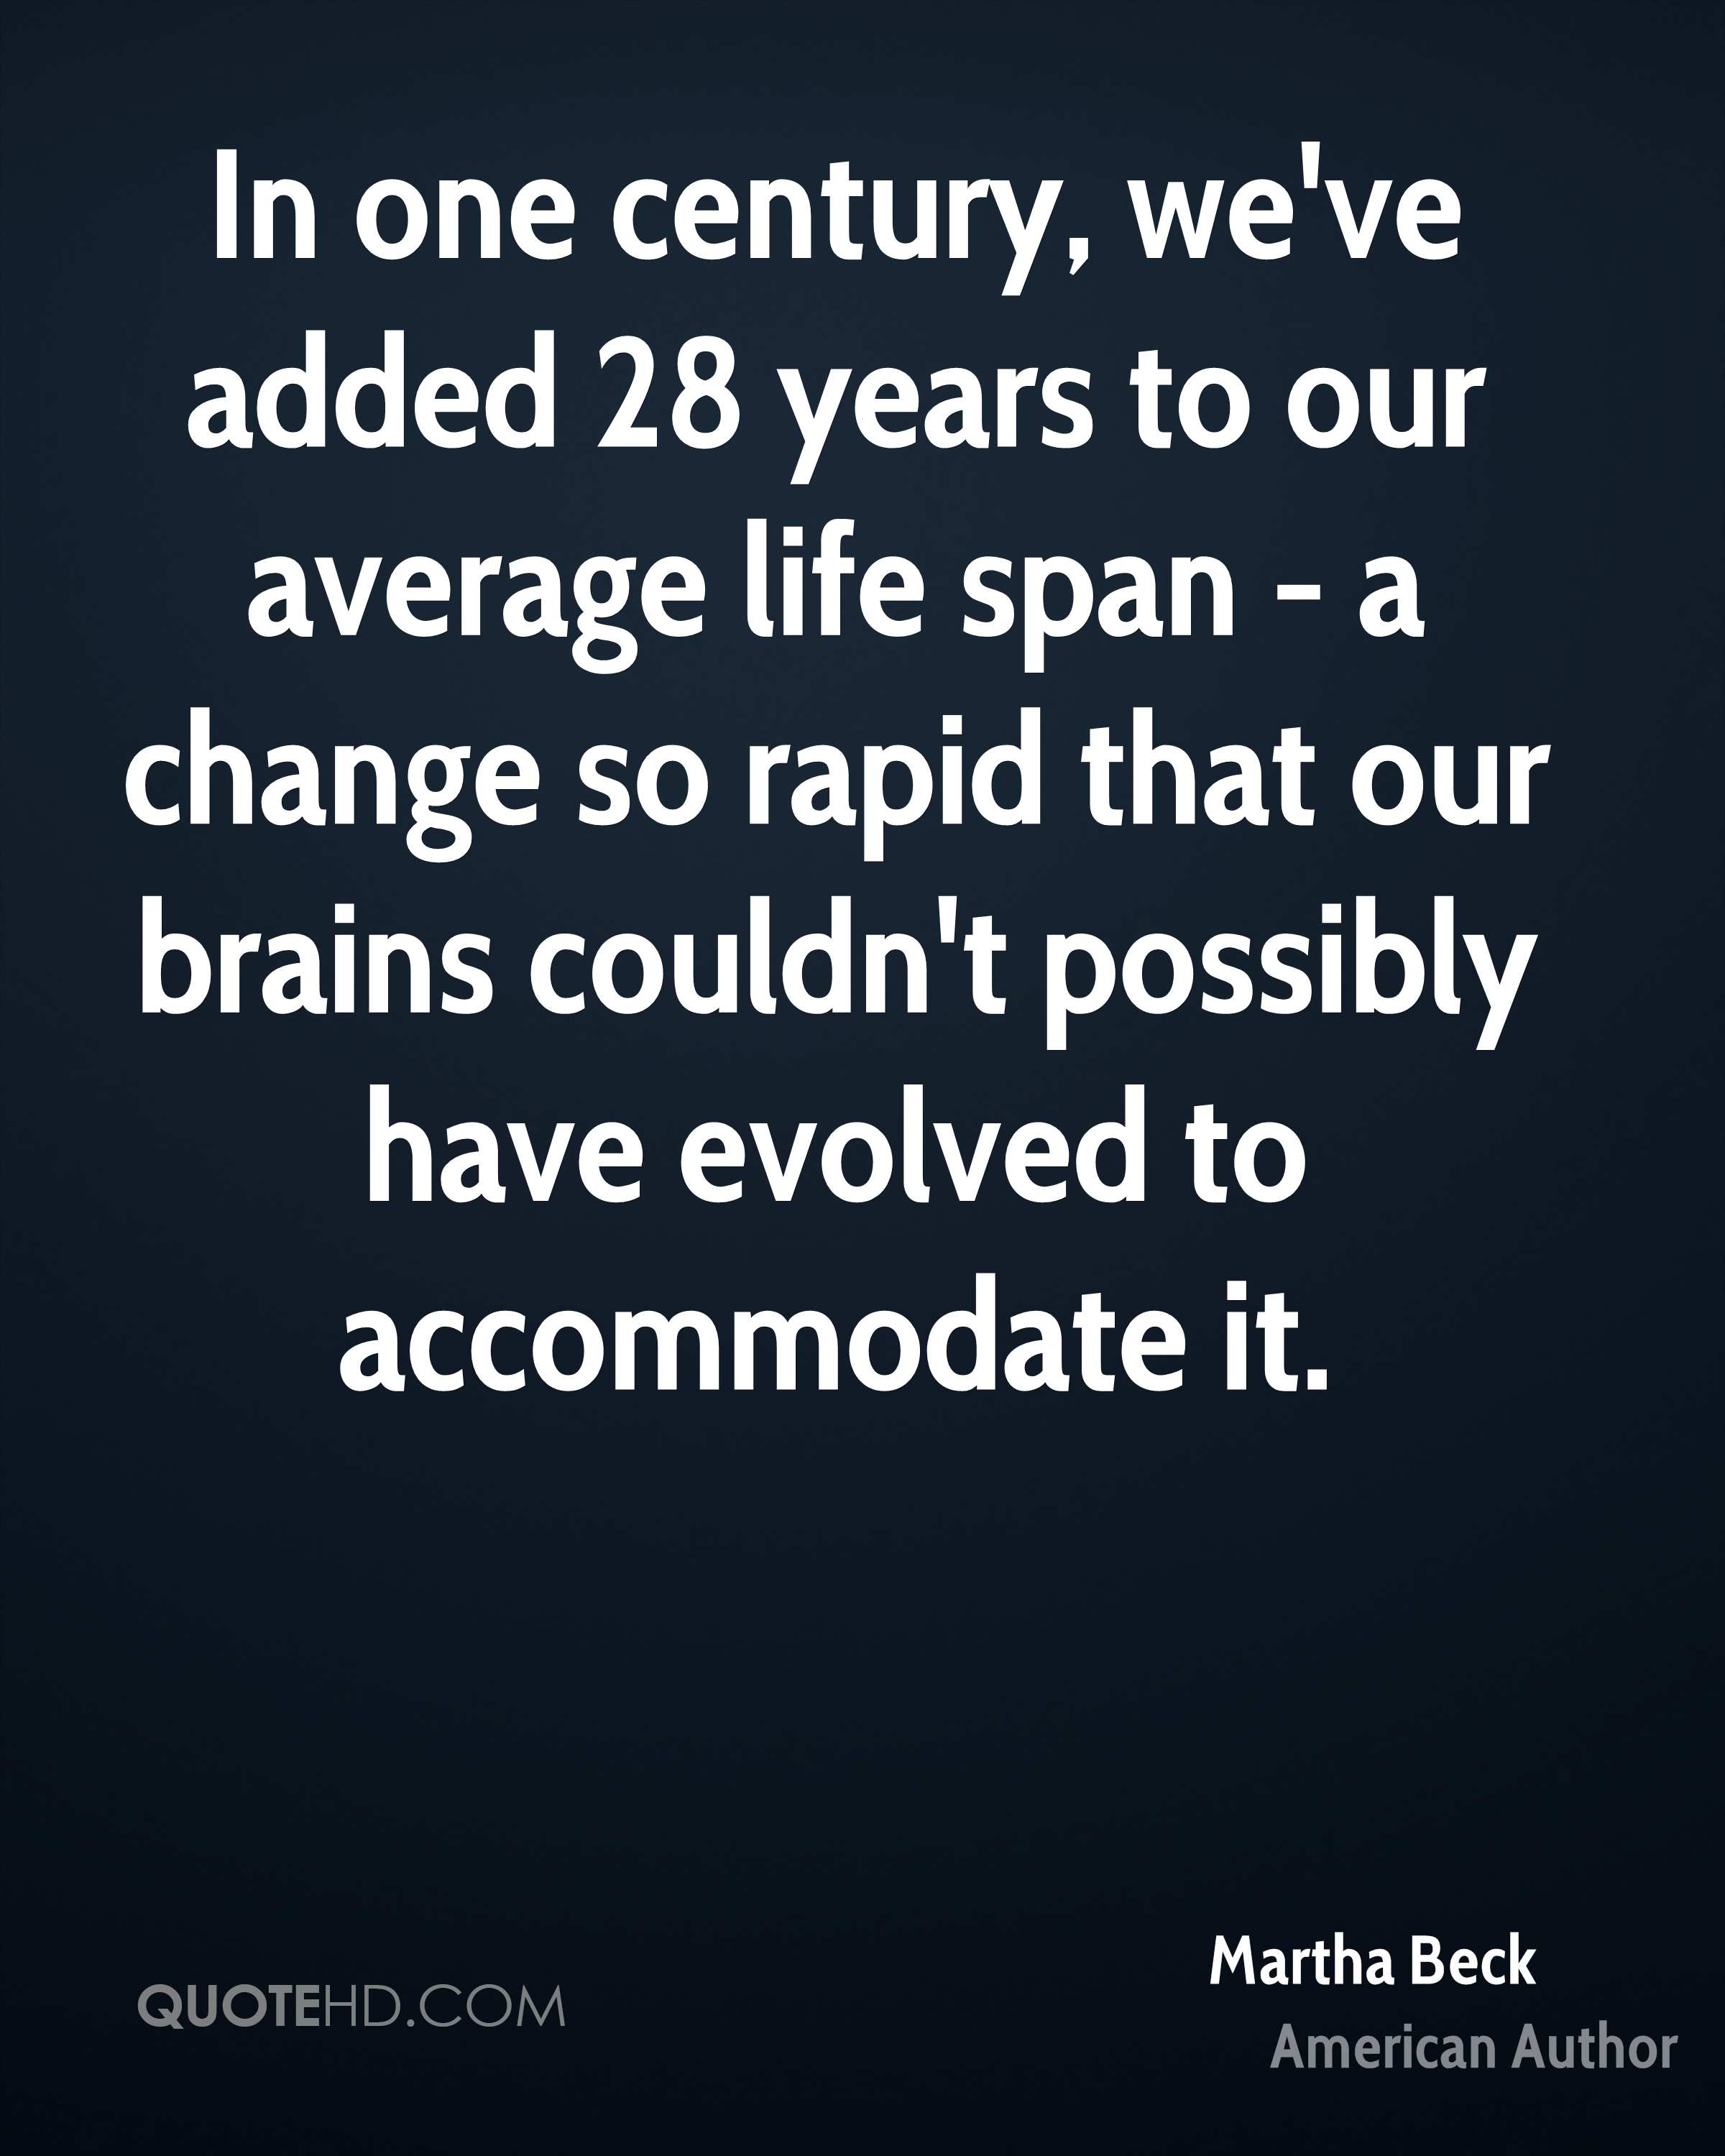 In one century, we've added 28 years to our average life span - a change so rapid that our brains couldn't possibly have evolved to accommodate it.